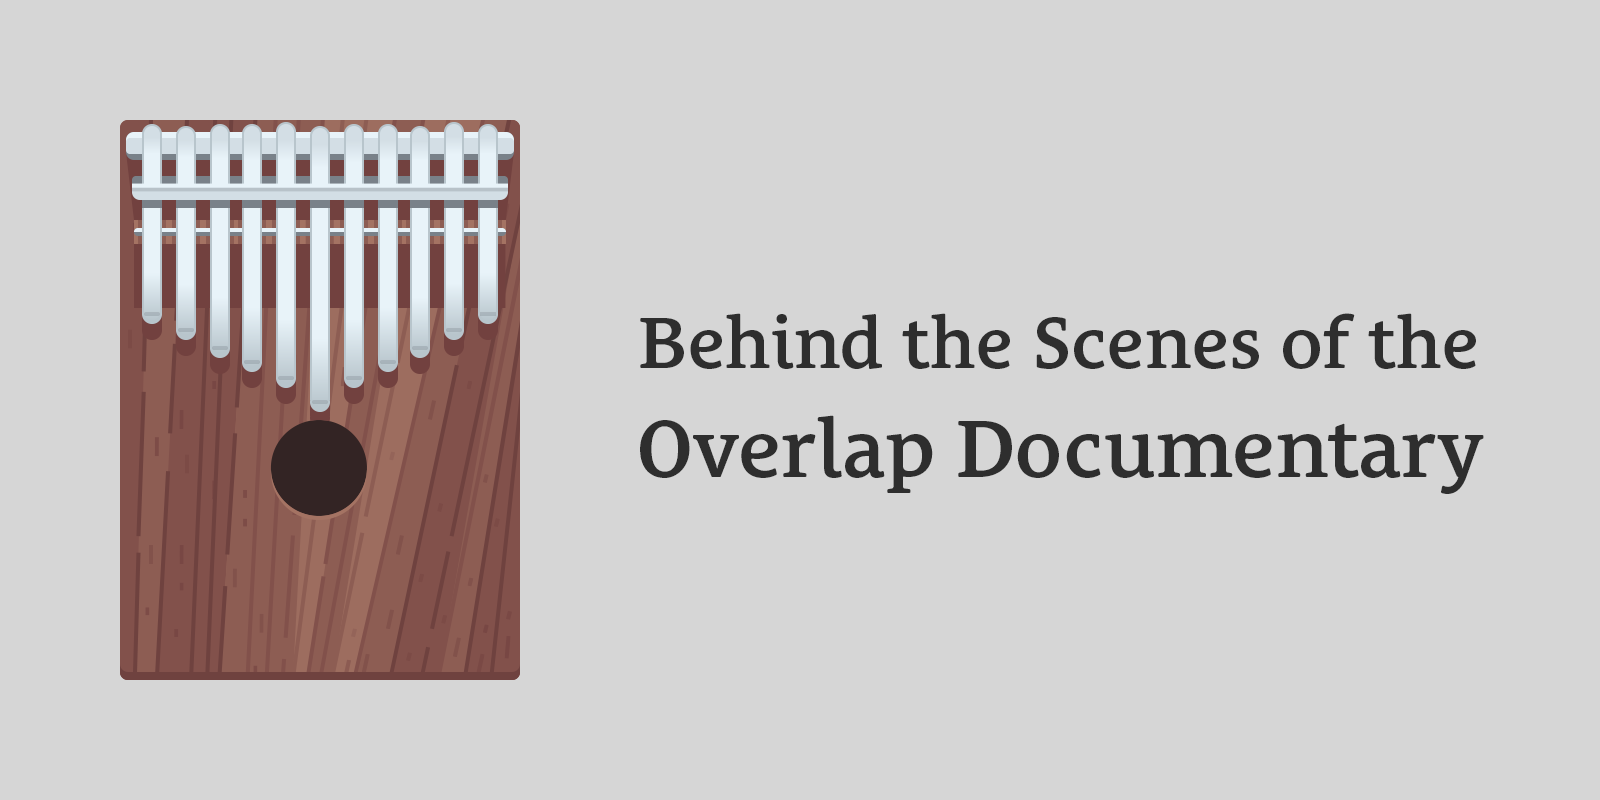 Behind the Scenes of the Overlap Documentary